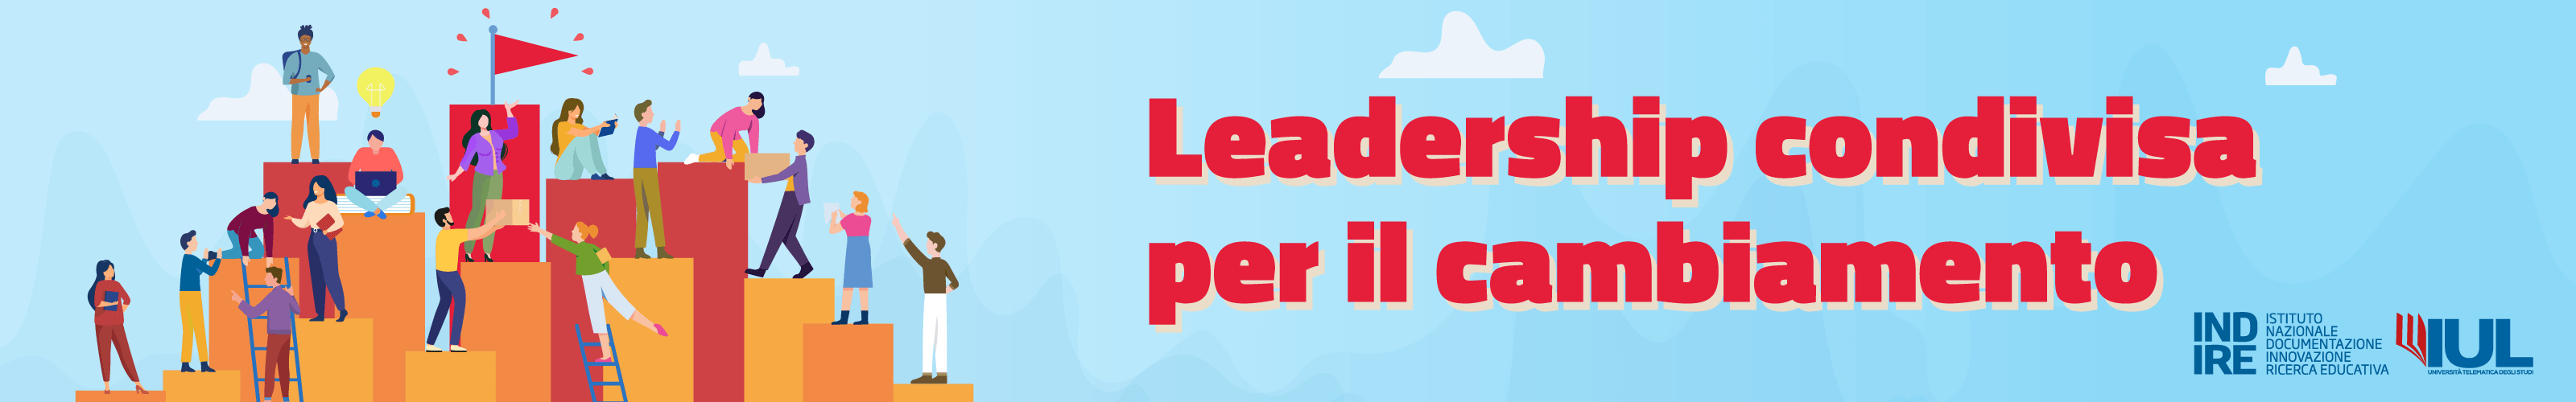 leadership condivisa